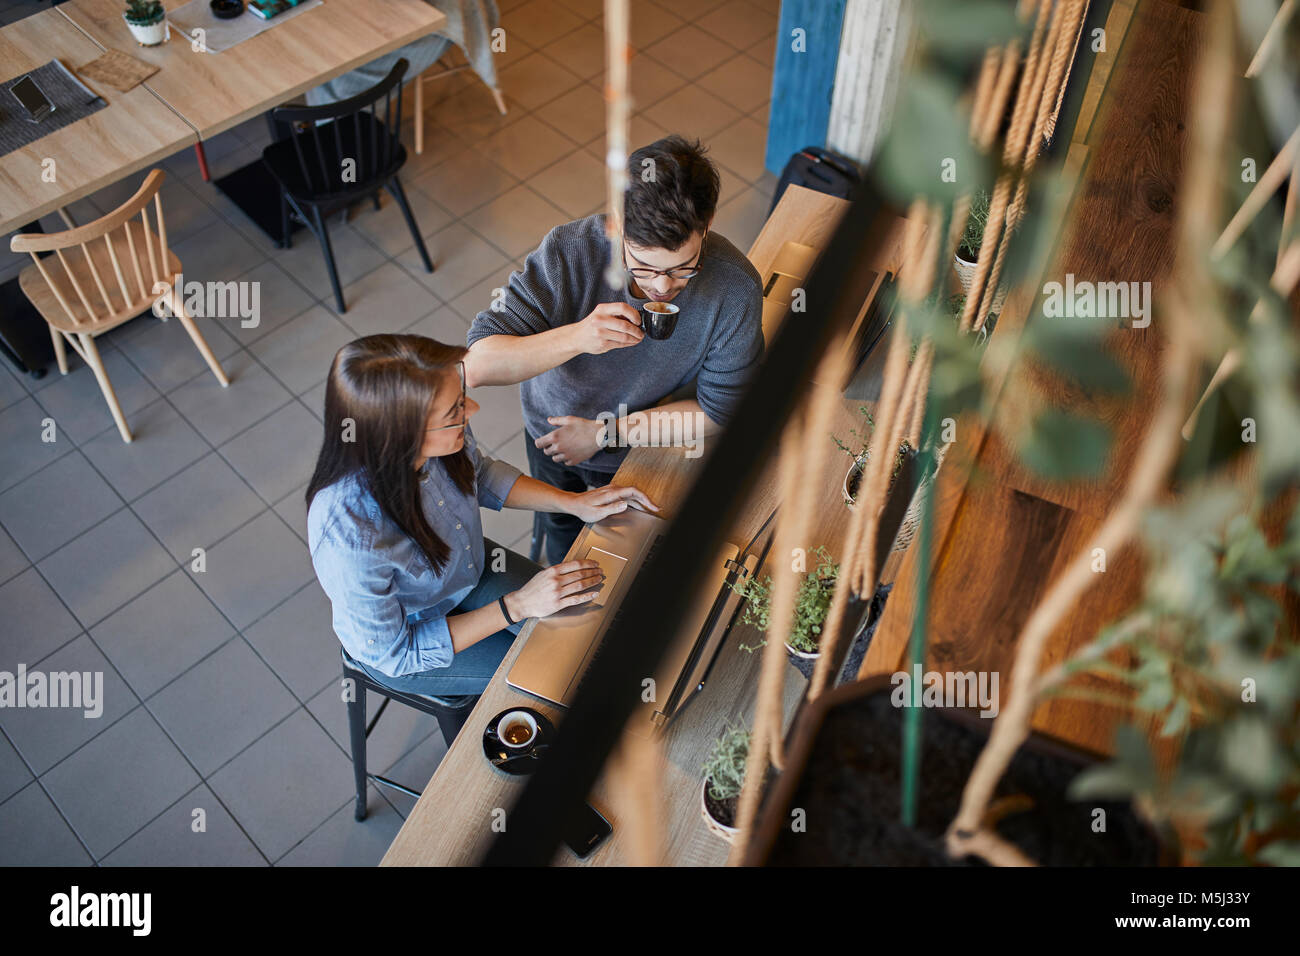 Young woman and man in a cafe with laptops talking and drinking espresso - Stock Image